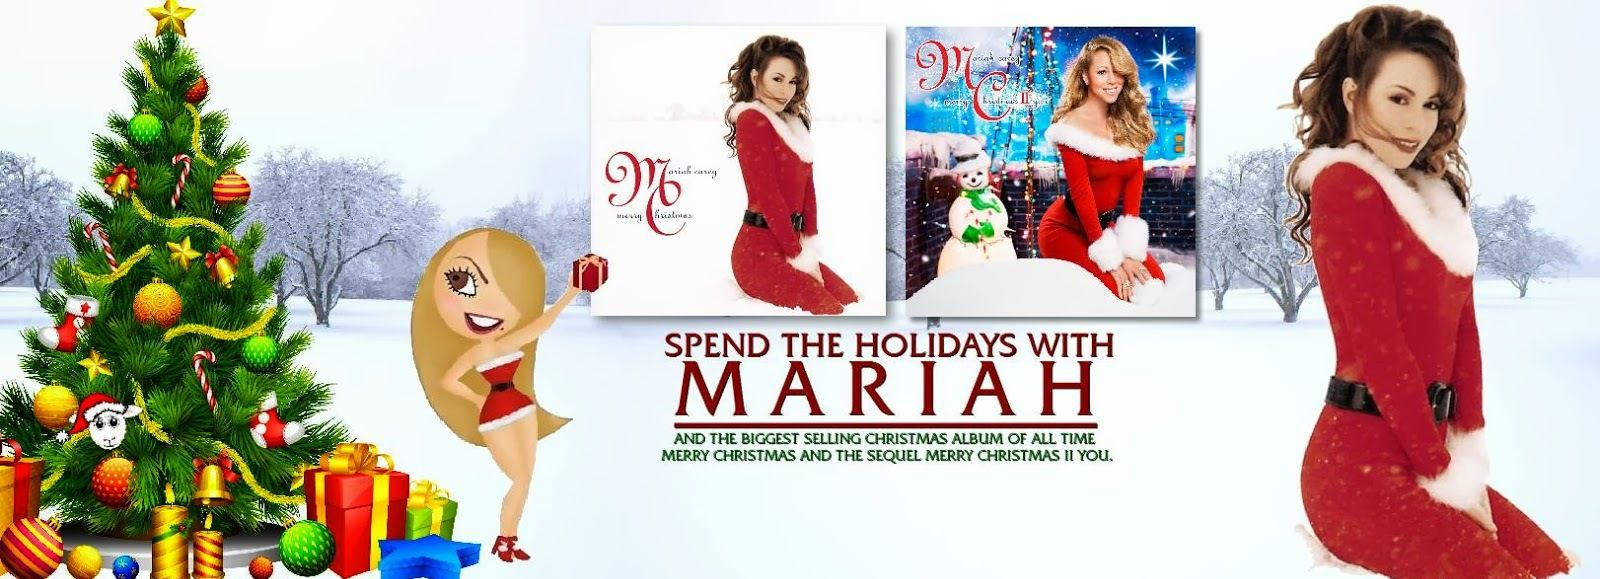 Mariah Carey Christmas Album Mariah Carey Christmas Album Christmas Albums Play Christmas Songs